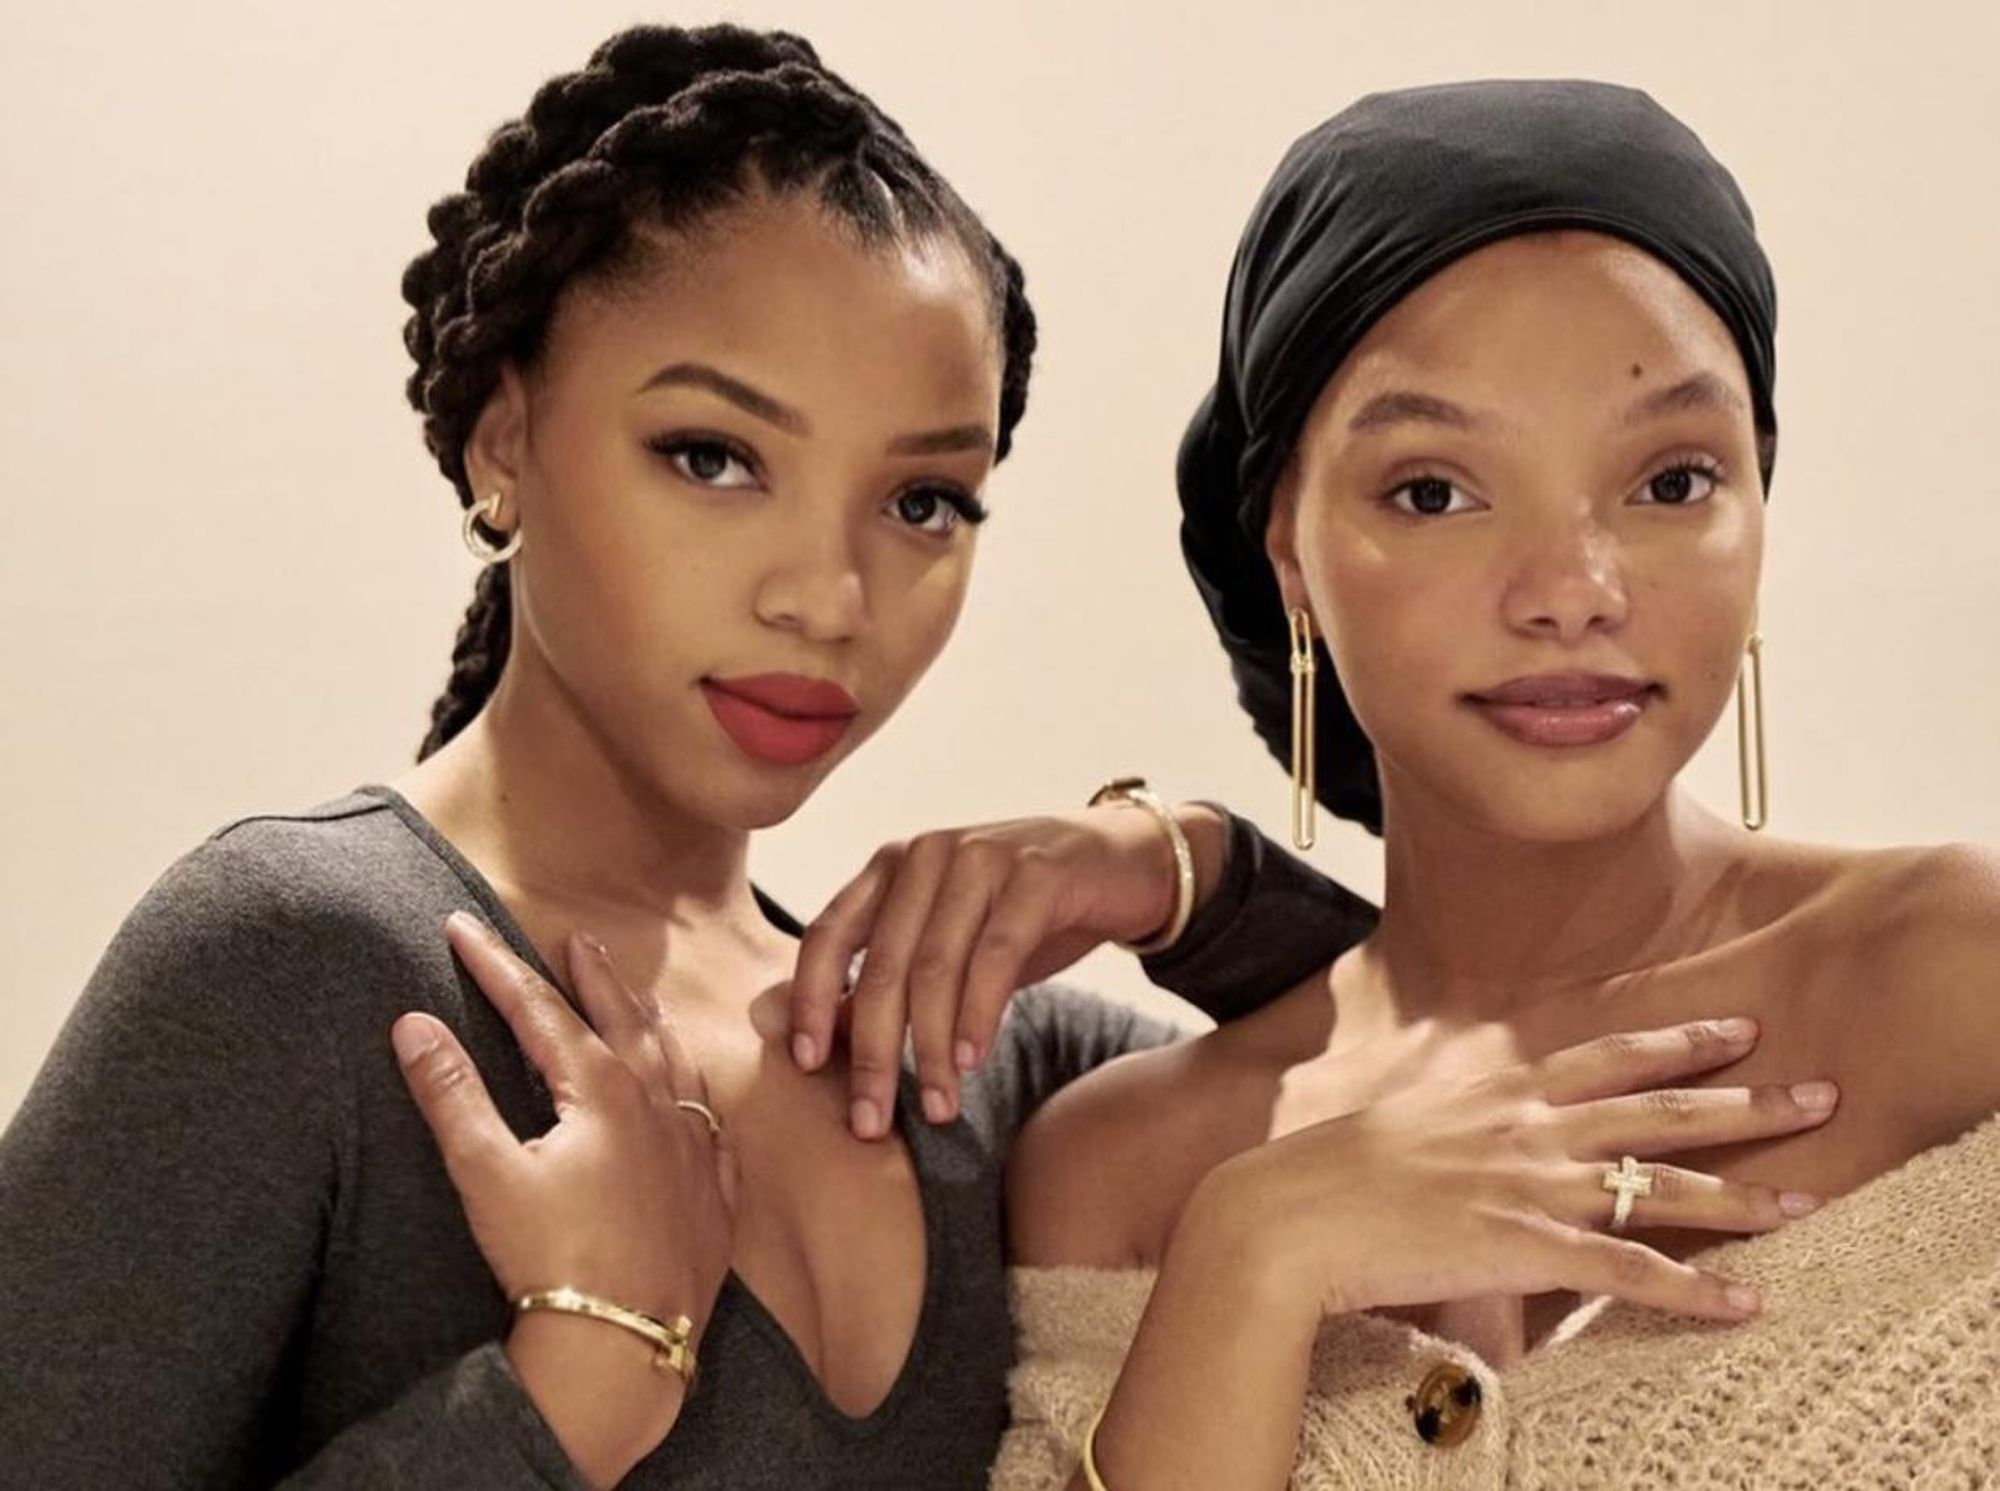 Chloe x Halle Become The First Siblings To Ever Be Named The Face Of Neutrogena